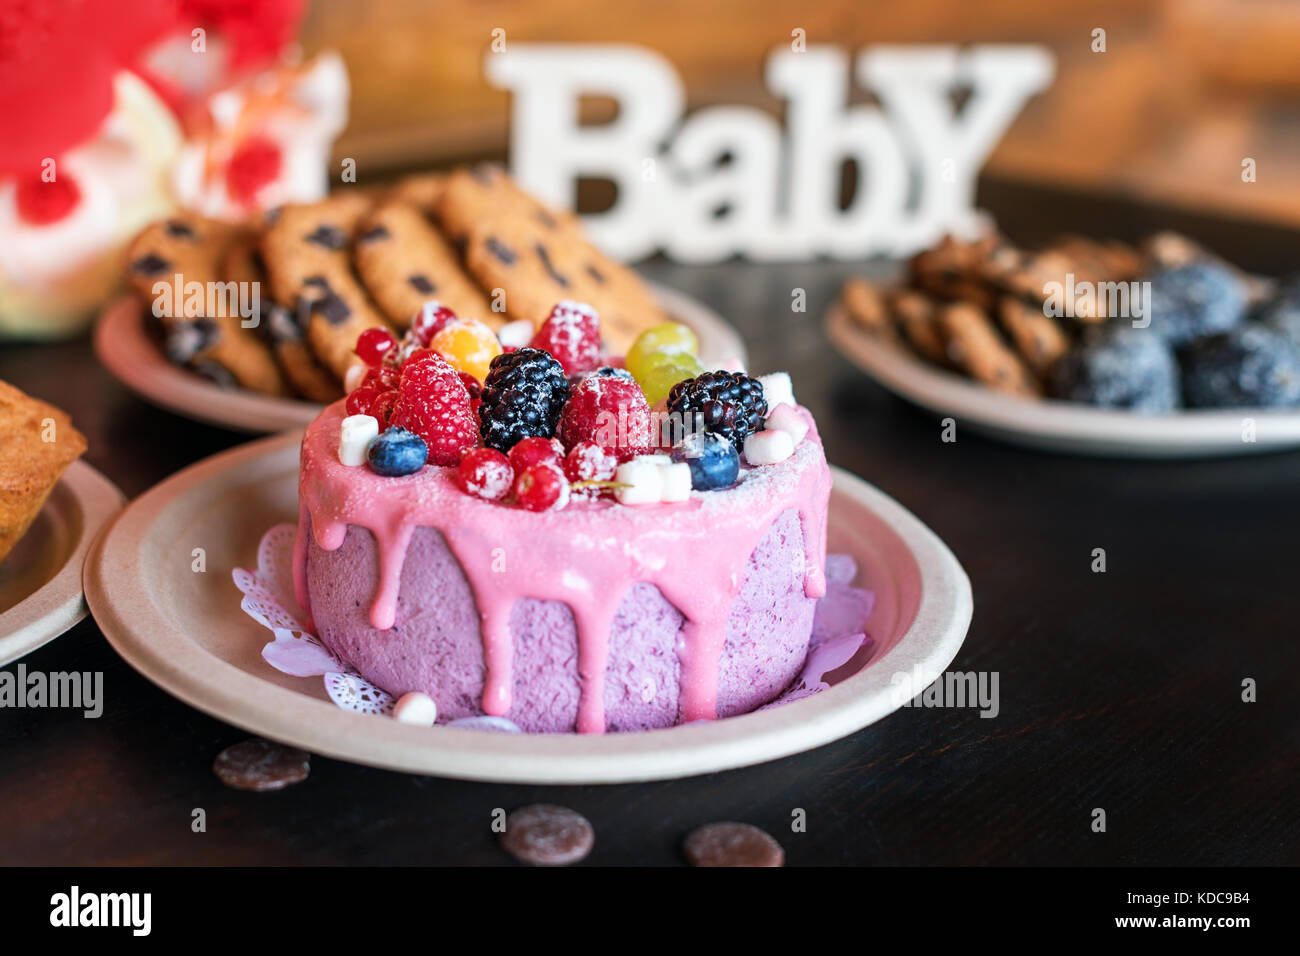 Birthday cakes and muffins with wooden greeting signs on rustic background. Wooden sing Baby and holiday sweets. - Stock Image